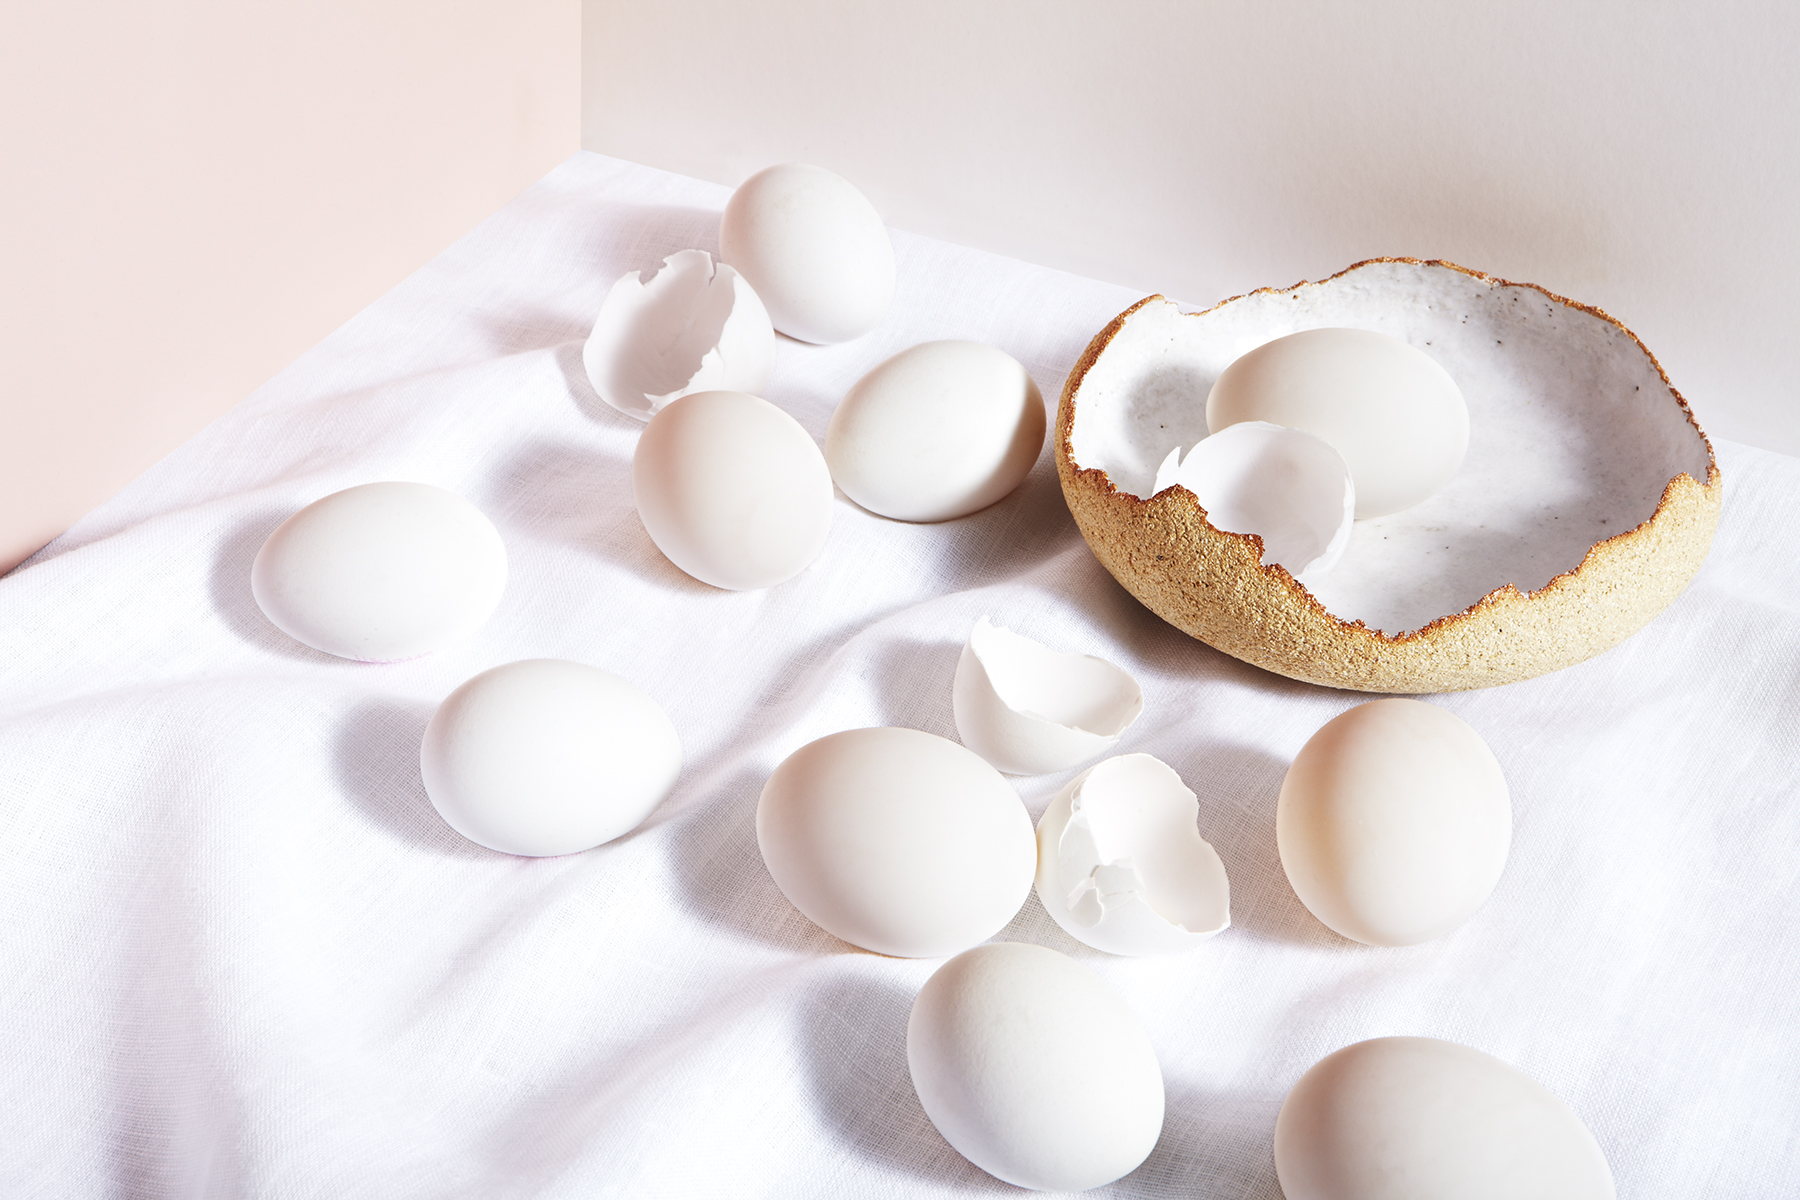 katie hammond white exploration of vanitas eggs still life